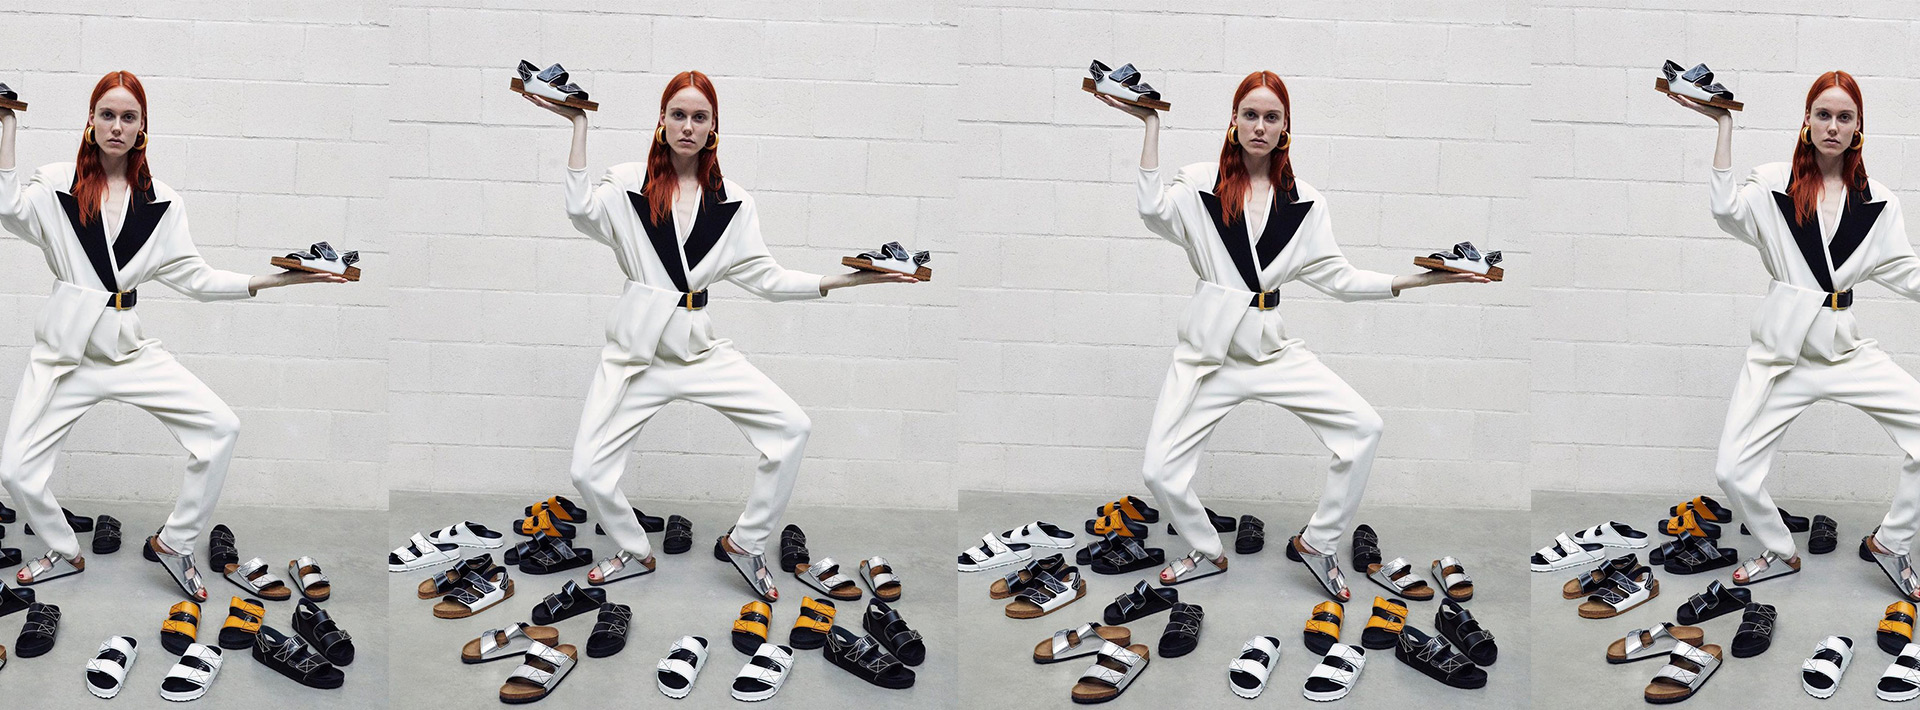 Proenza Schouler x Birkenstock collab is going to be out on March 20th: now you can def drip your leather sandals game.